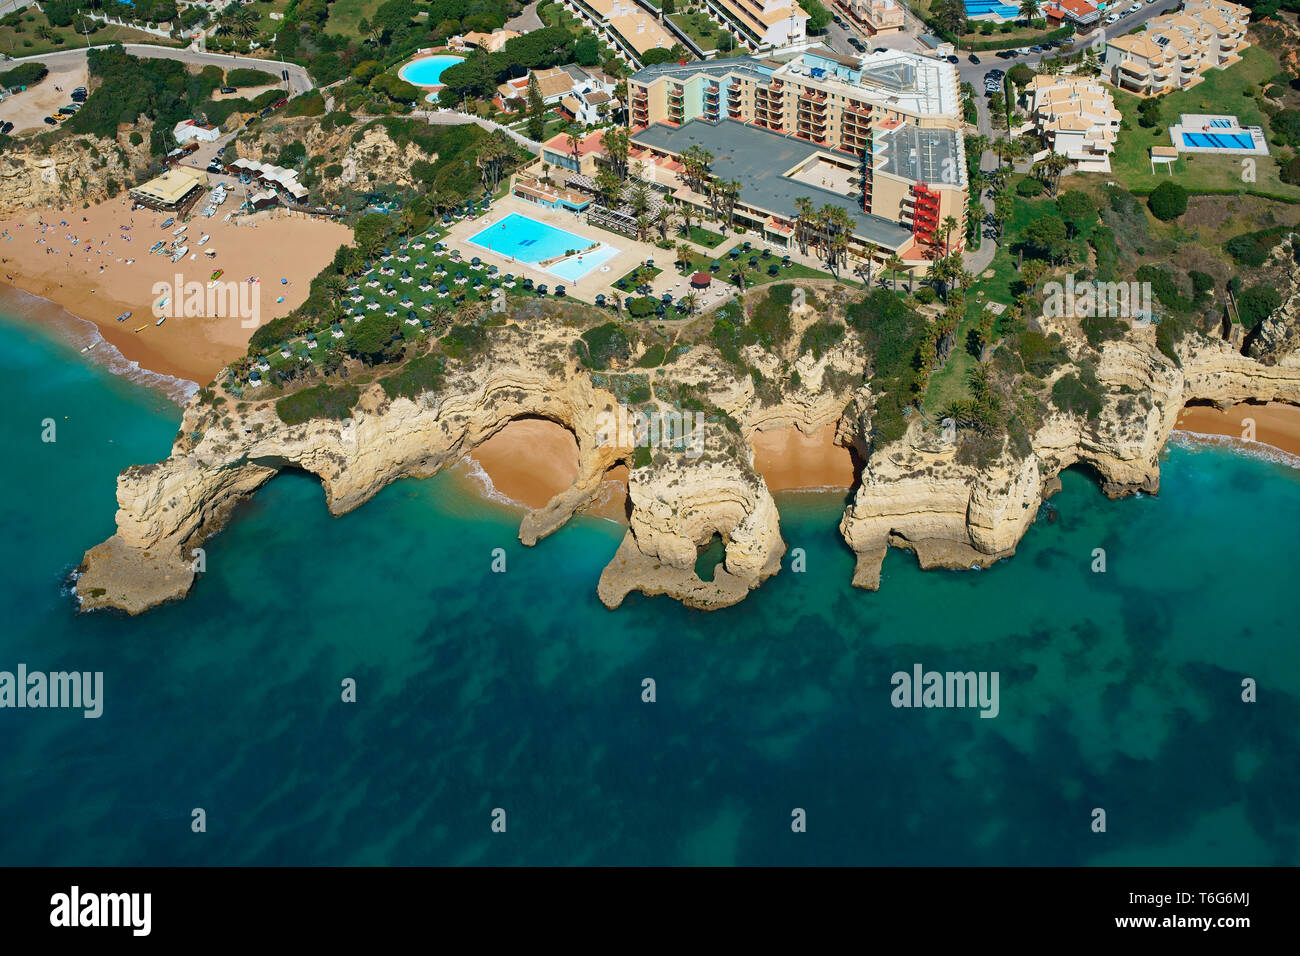 RESORT OVERLOOKING AN IMPRESSIVE LANDSCAPE OF CLIFFS AND COVES (aerial view). Pestana Viking Resort in Porches, Lagoa, Algarve, Portugal. - Stock Image